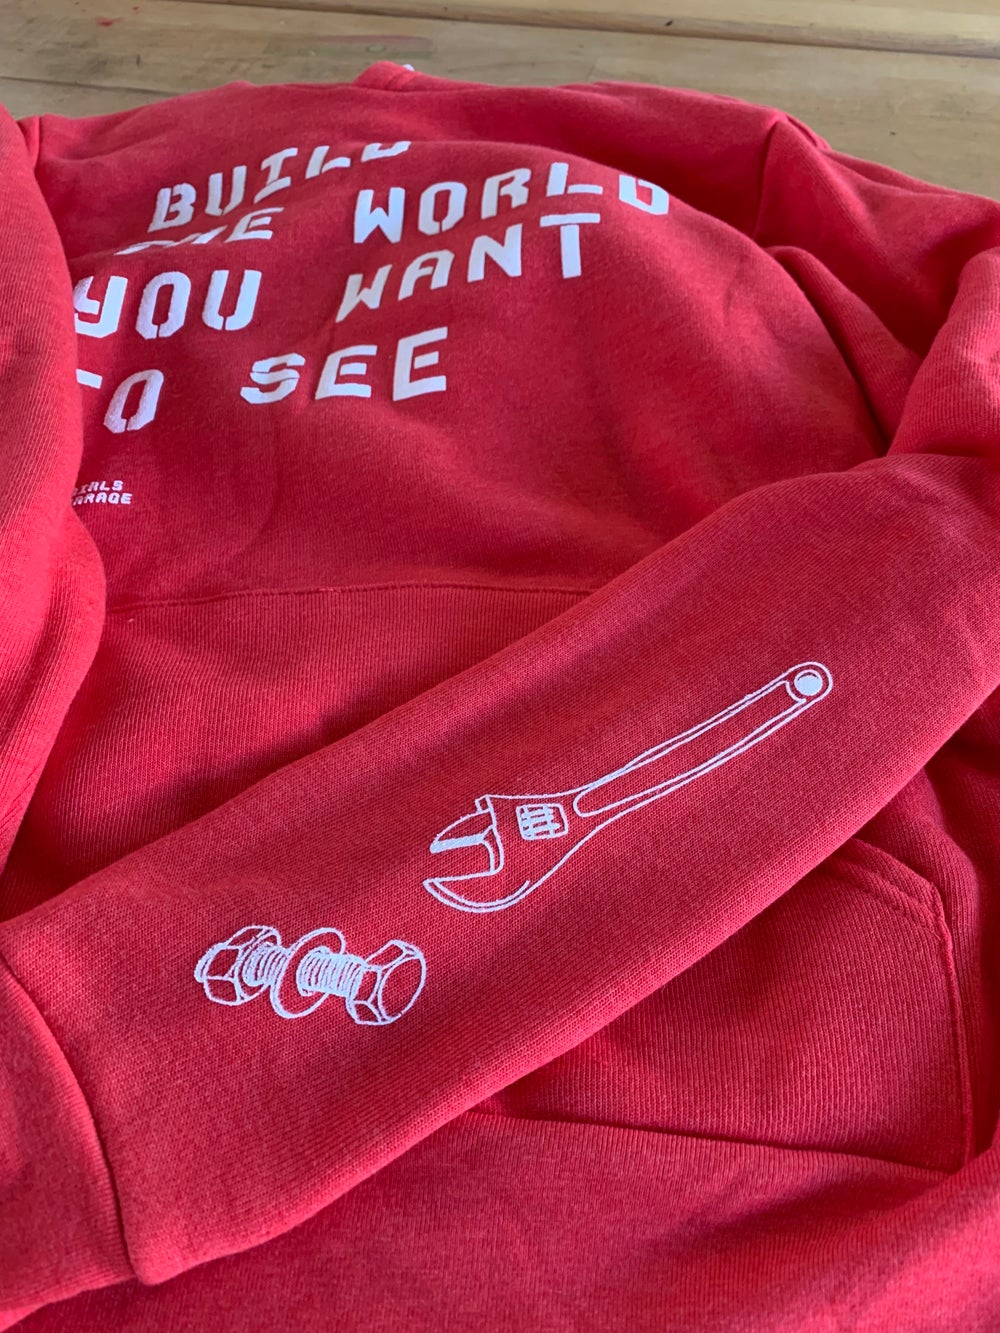 Build the World You Want to See Hoodie